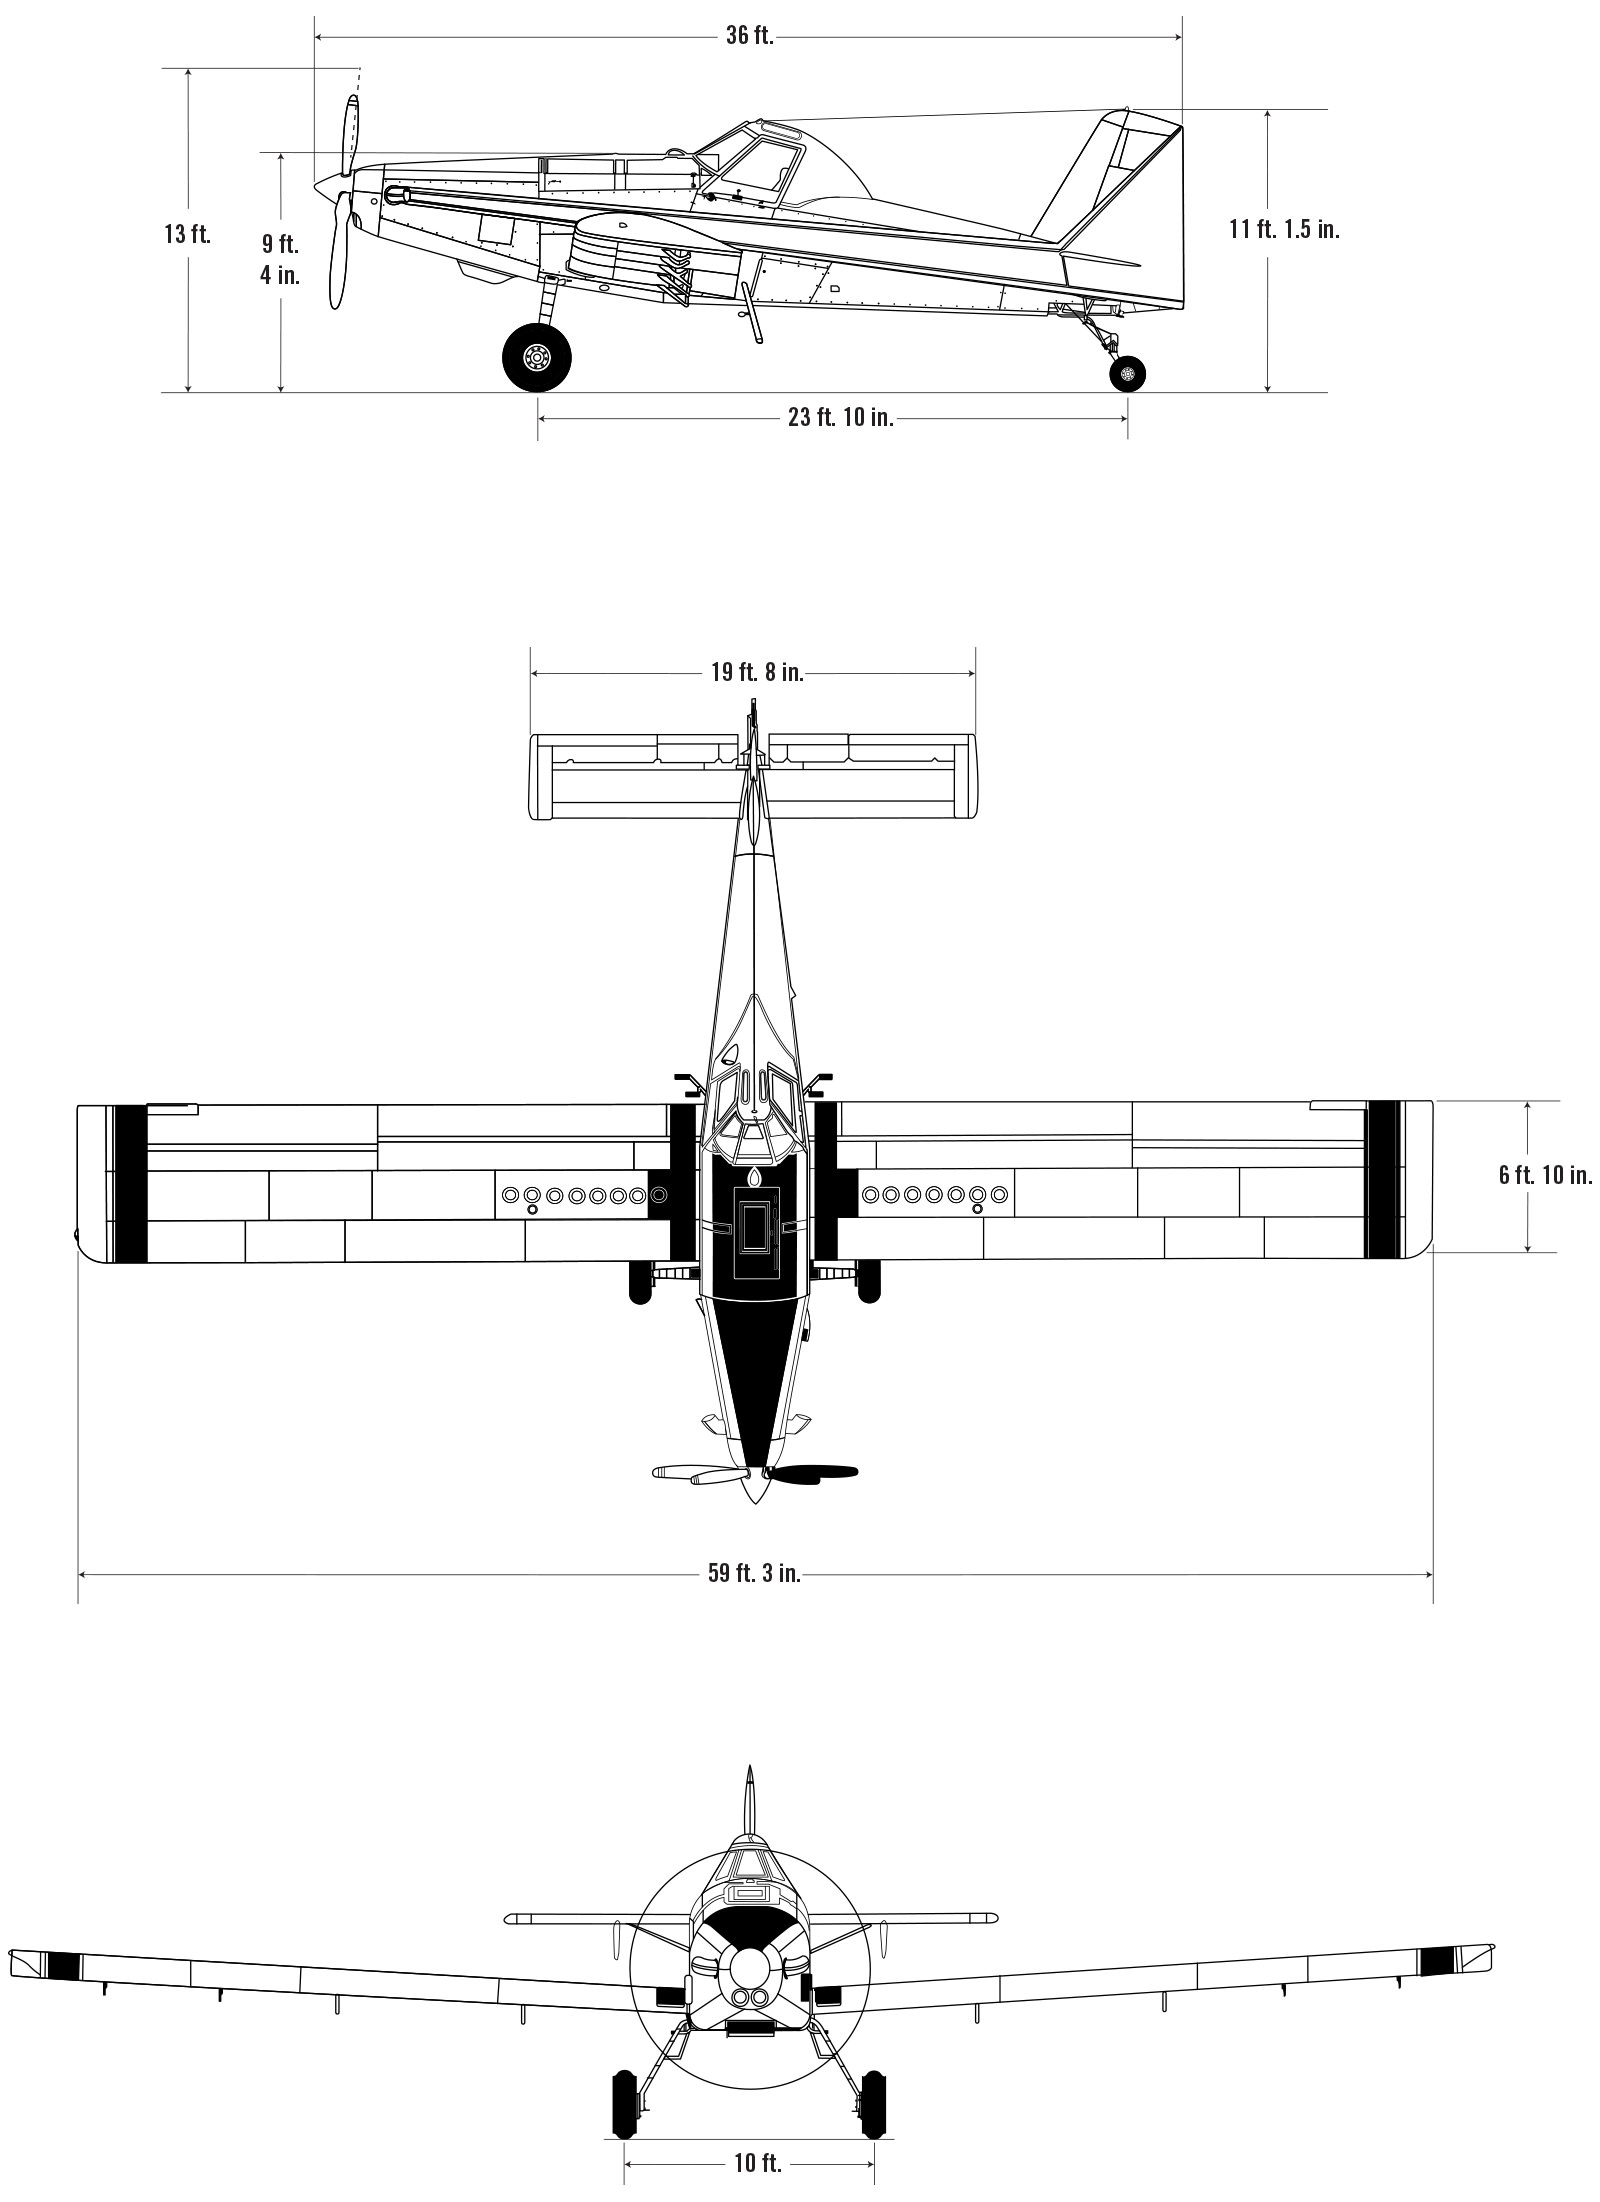 At 802a Air Tractor Tank Truck Manufacturer Schematic Dimensional Drawings